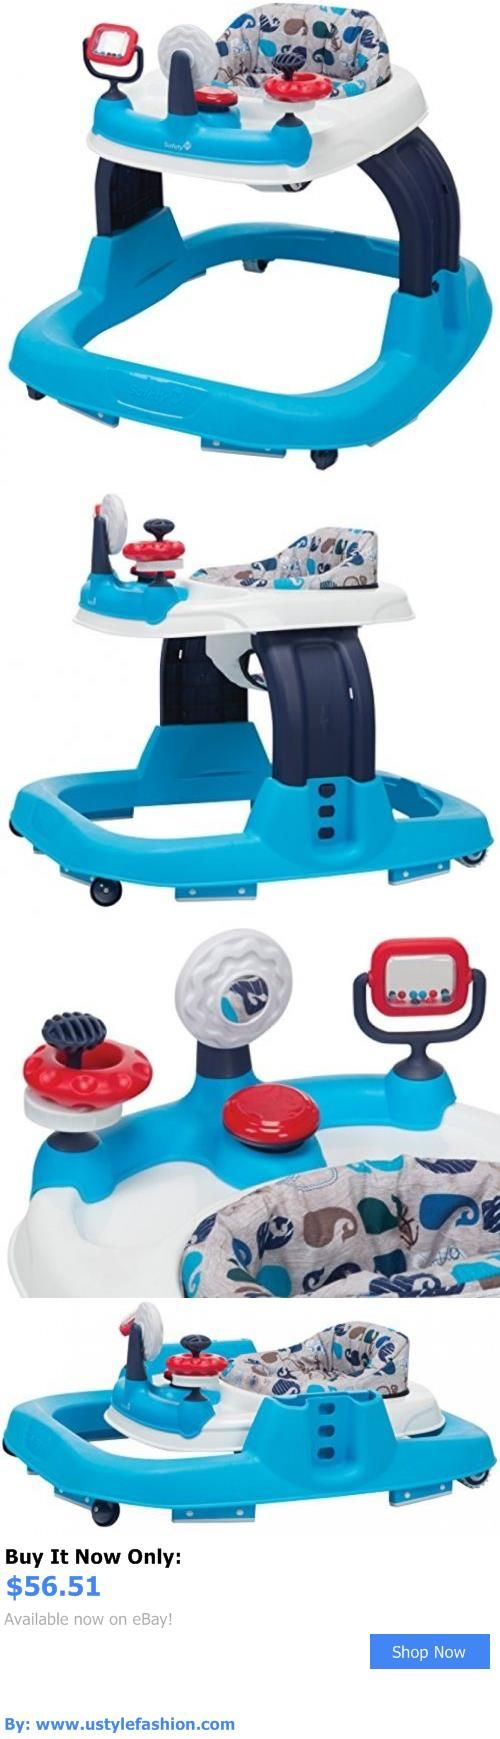 Baby walkers: Safety 1St Ready-Set-Walk Walker, Nantucket BUY IT NOW ONLY: $56.51 #ustylefashionBabywalkers OR #ustylefashion